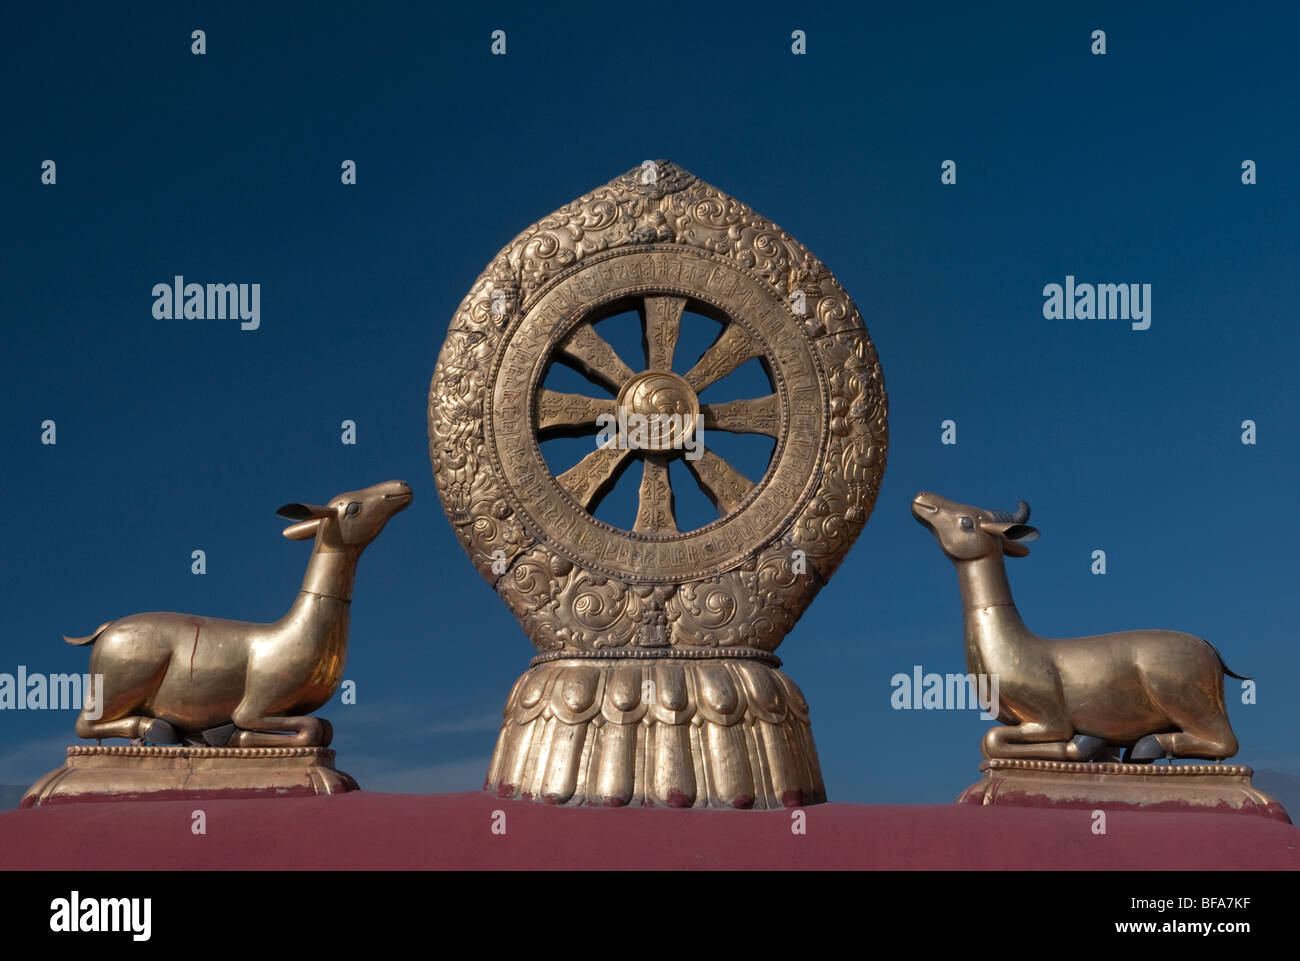 Two deer sit on either side of the wheel of dharma on the roof of the Jokhang Temple in Lhasa Tibet - Stock Image